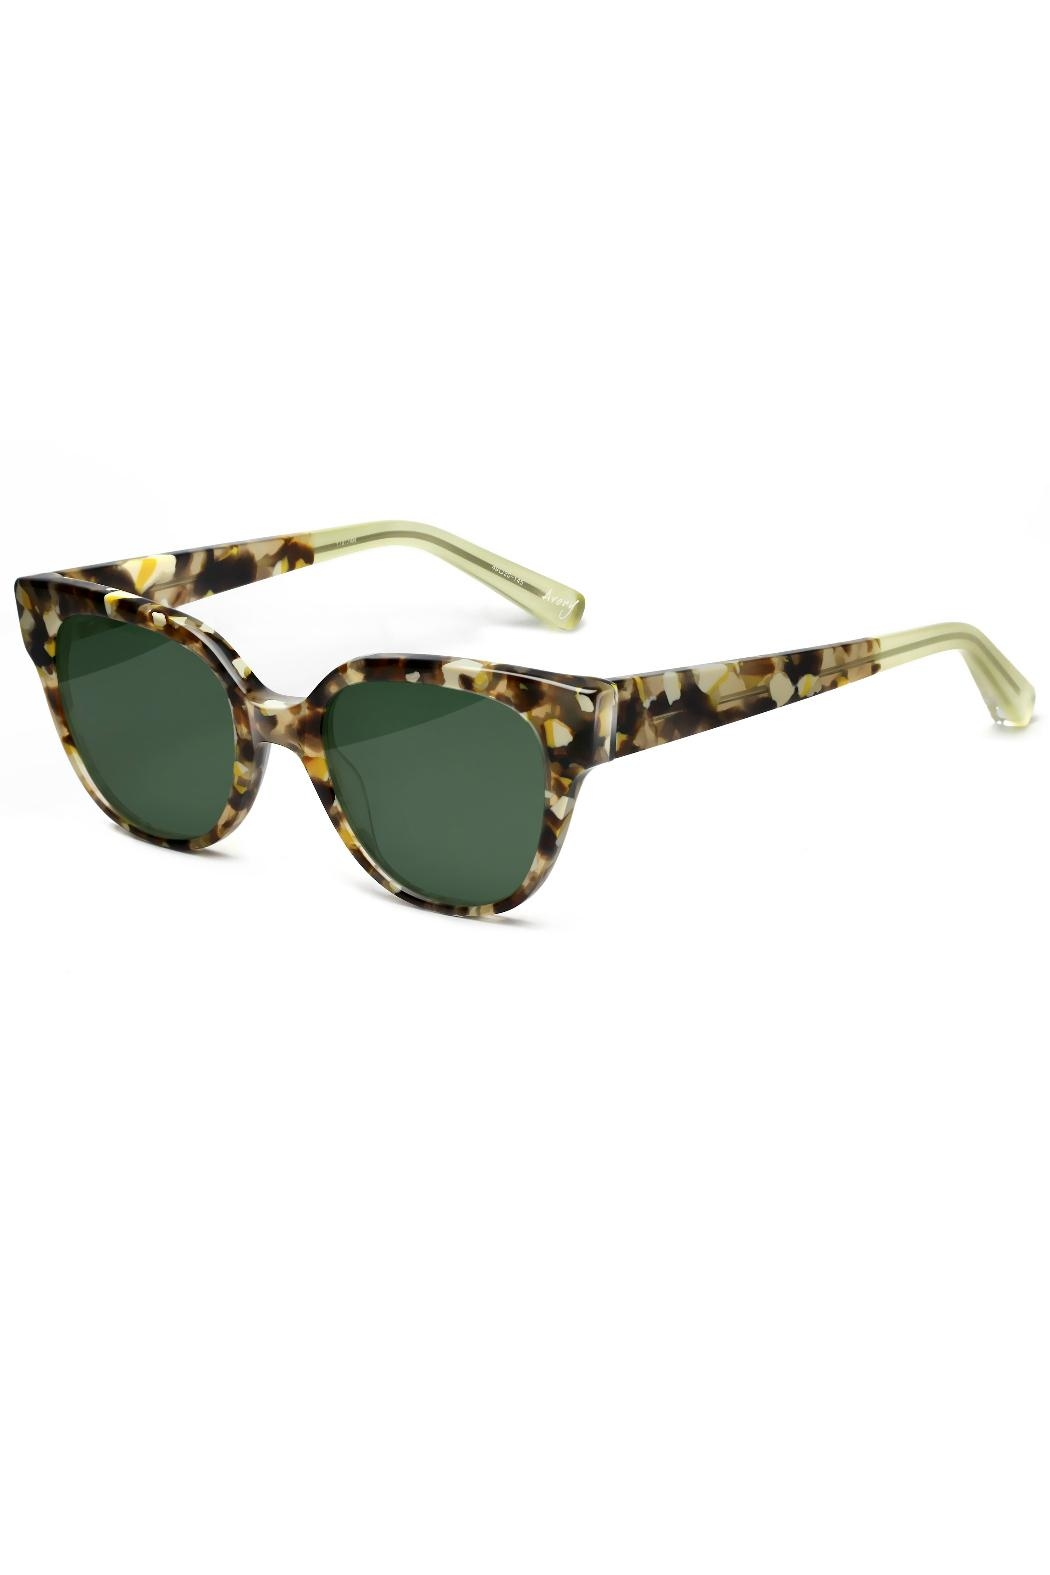 Elizabeth and james Sunglasses Avory Tortoise - Front Full Image